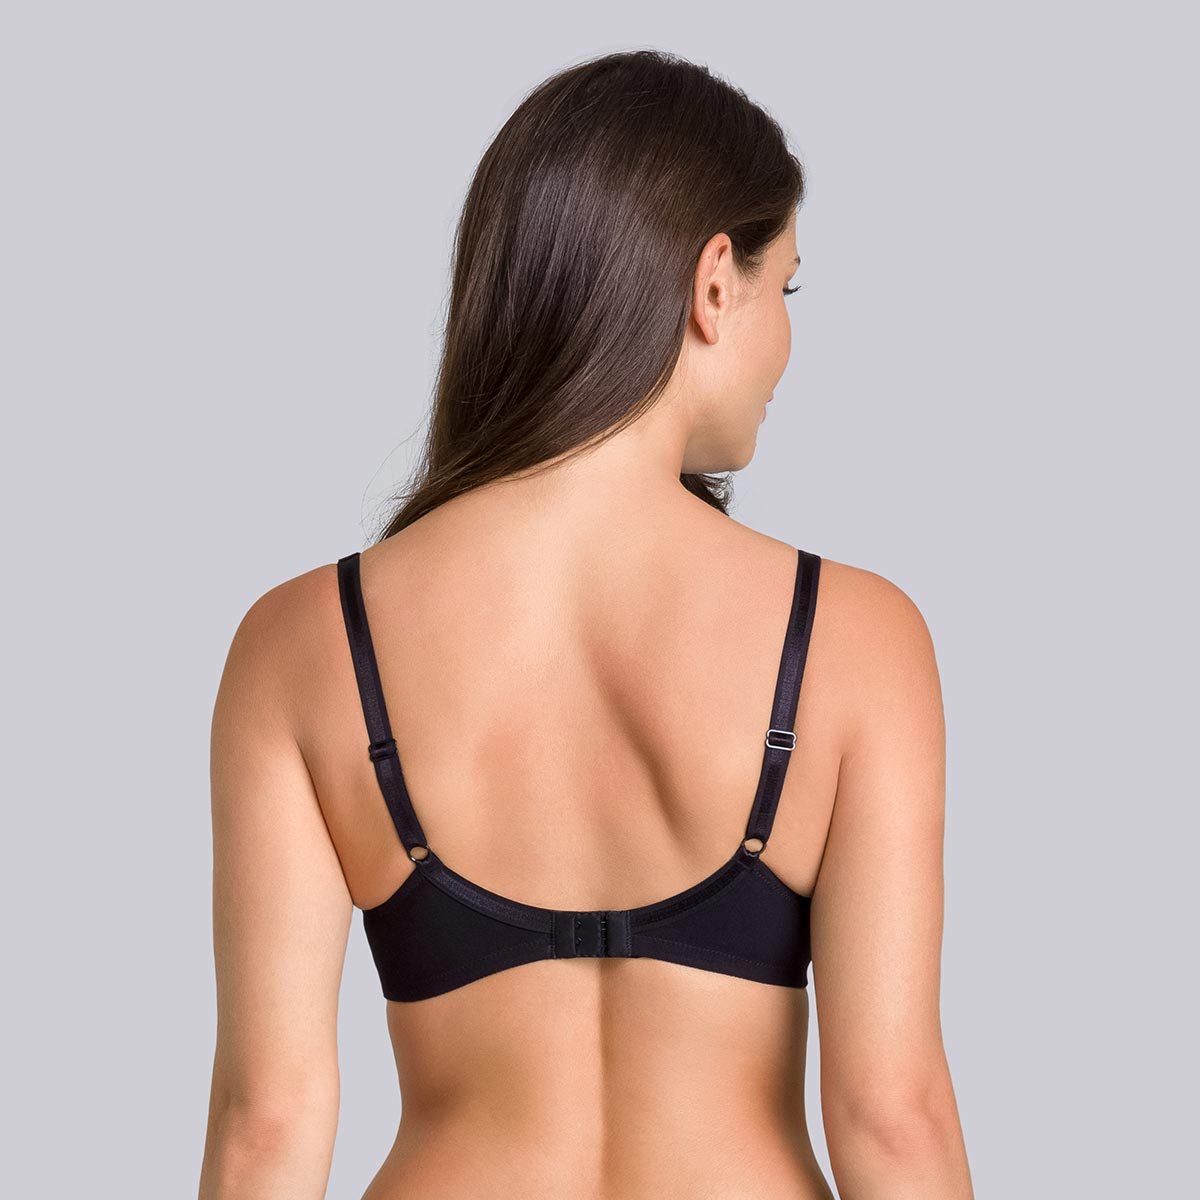 Non-Wired Cotton Bra in Black - Cotton Support-PLAYTEX